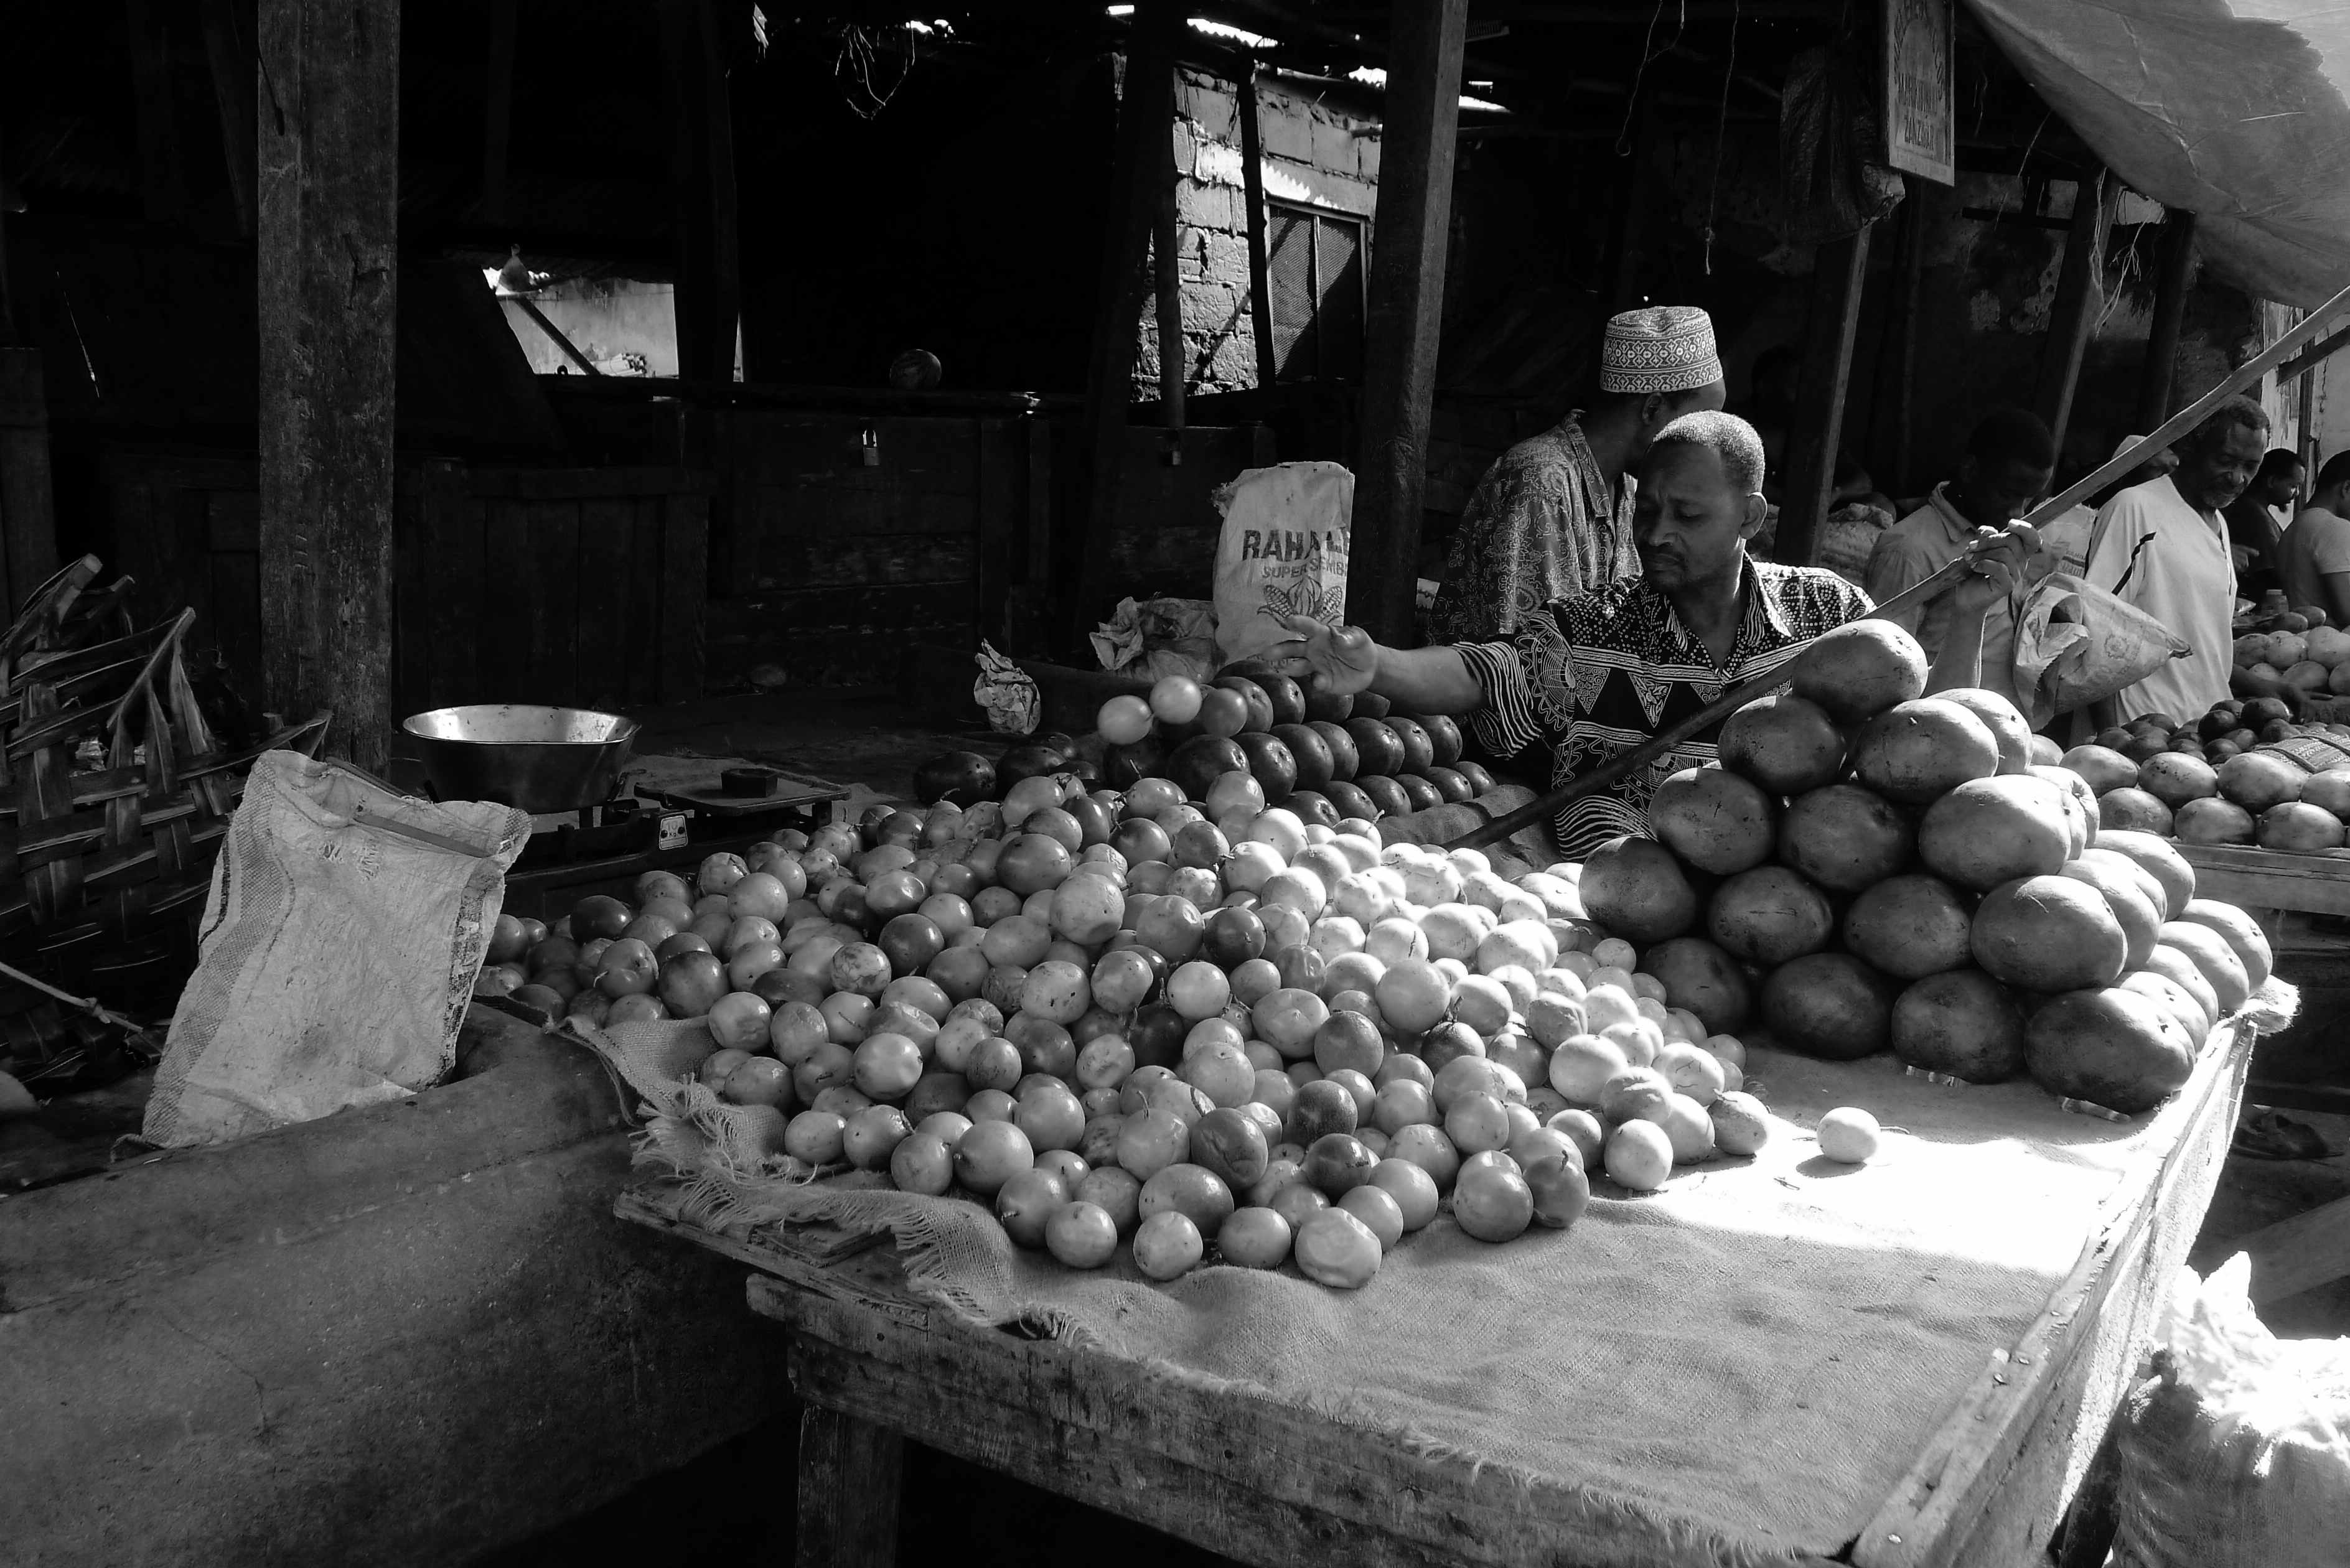 Man selling passion fruits, Stone Town